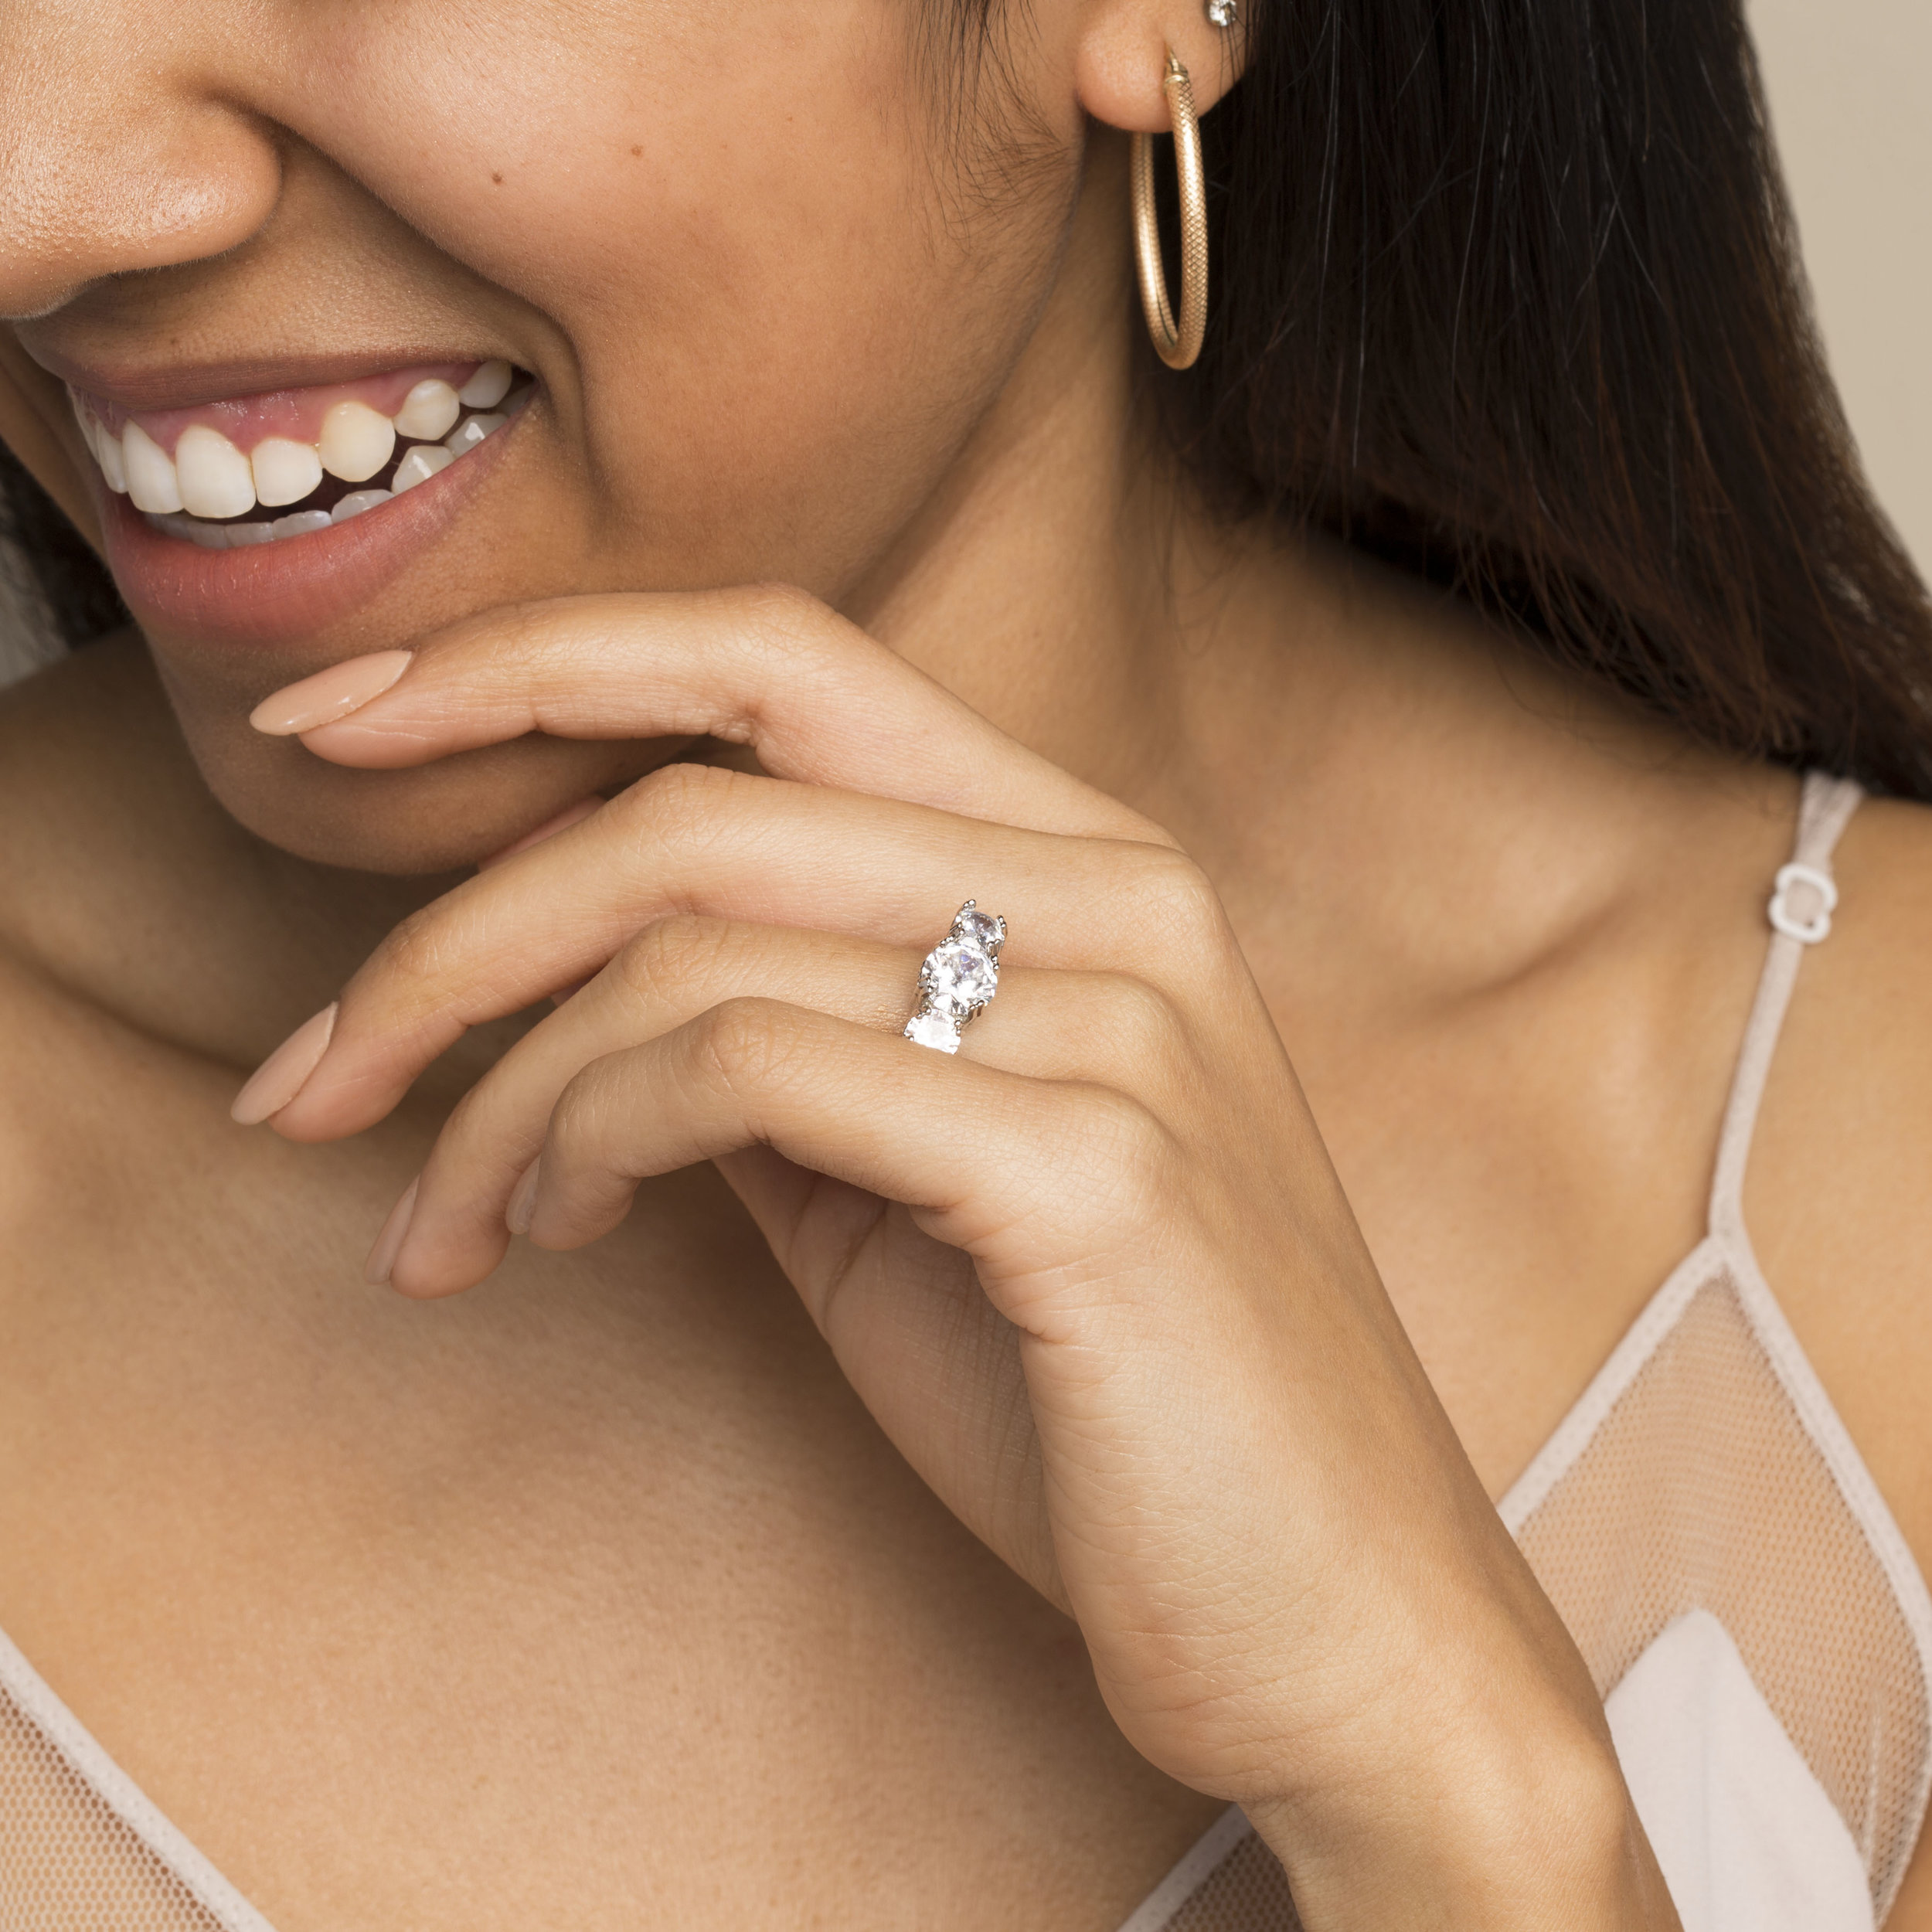 young brown model smiling wearing engagement ring with manicured nails